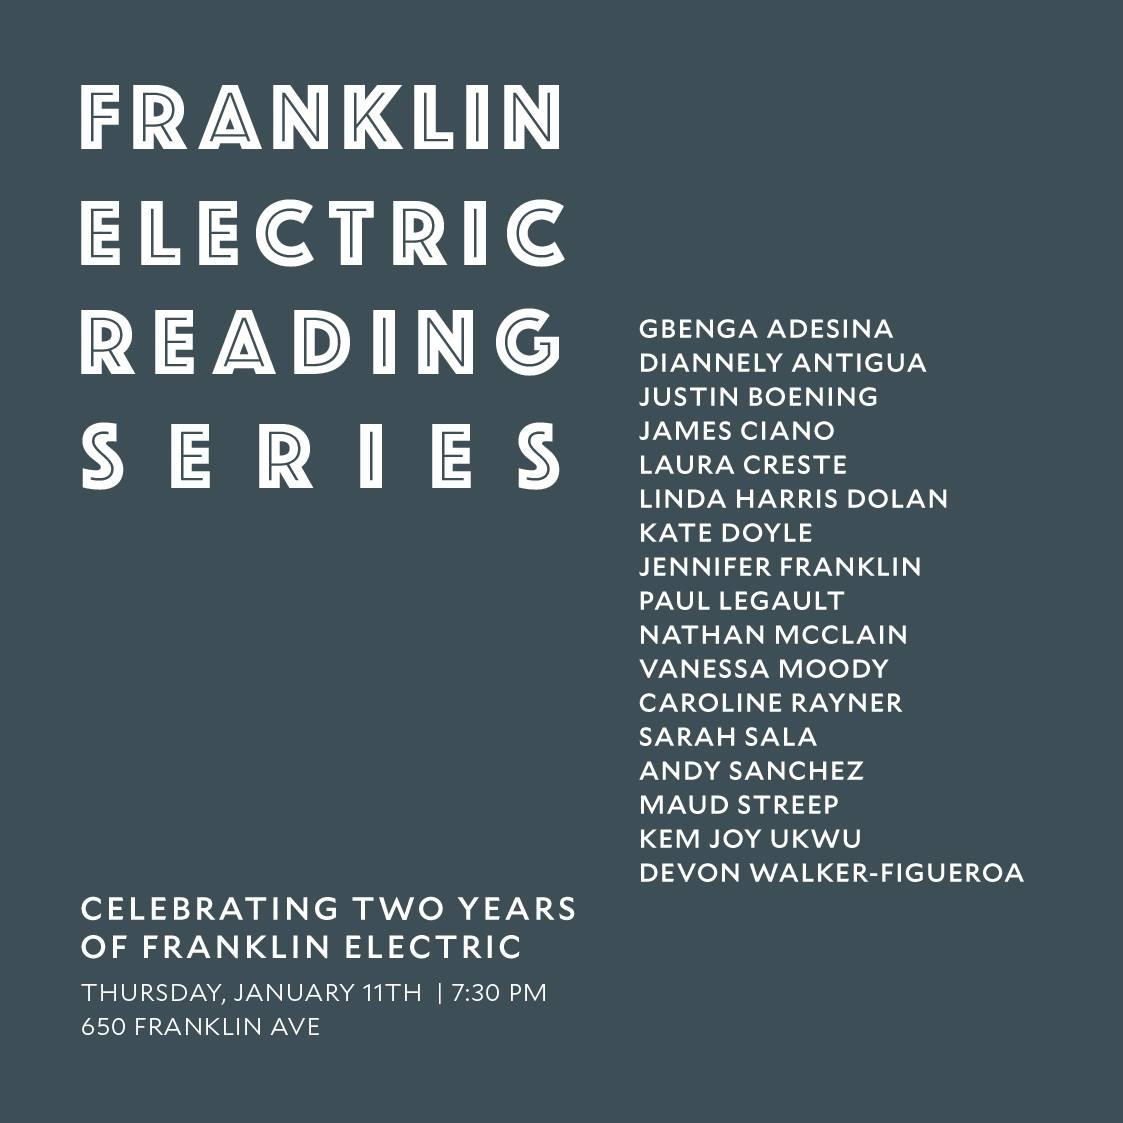 Franklin Electric Reading Series Reunion Reading